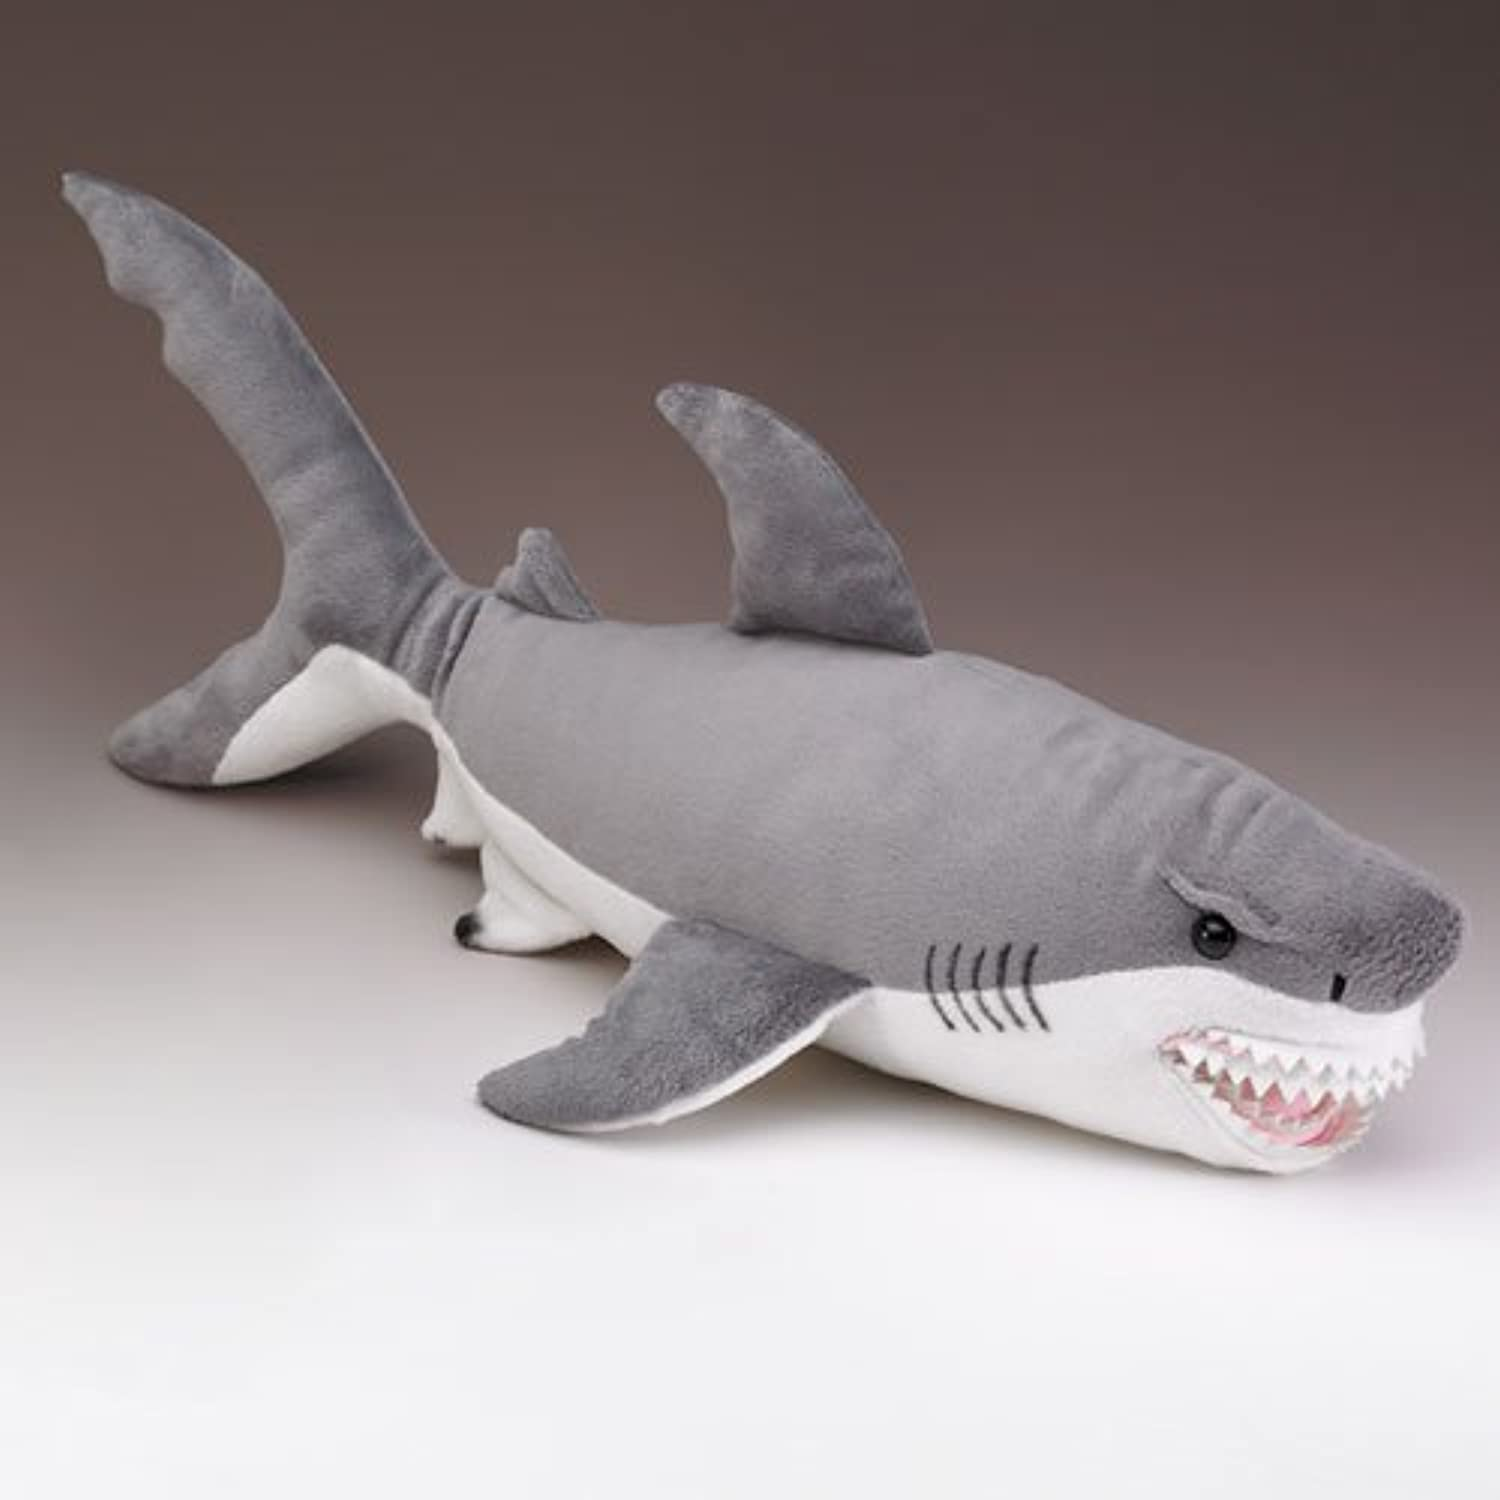 Wildlife Artists Great White Shark Stuffed Animal, XLarge by Wildlife Artists